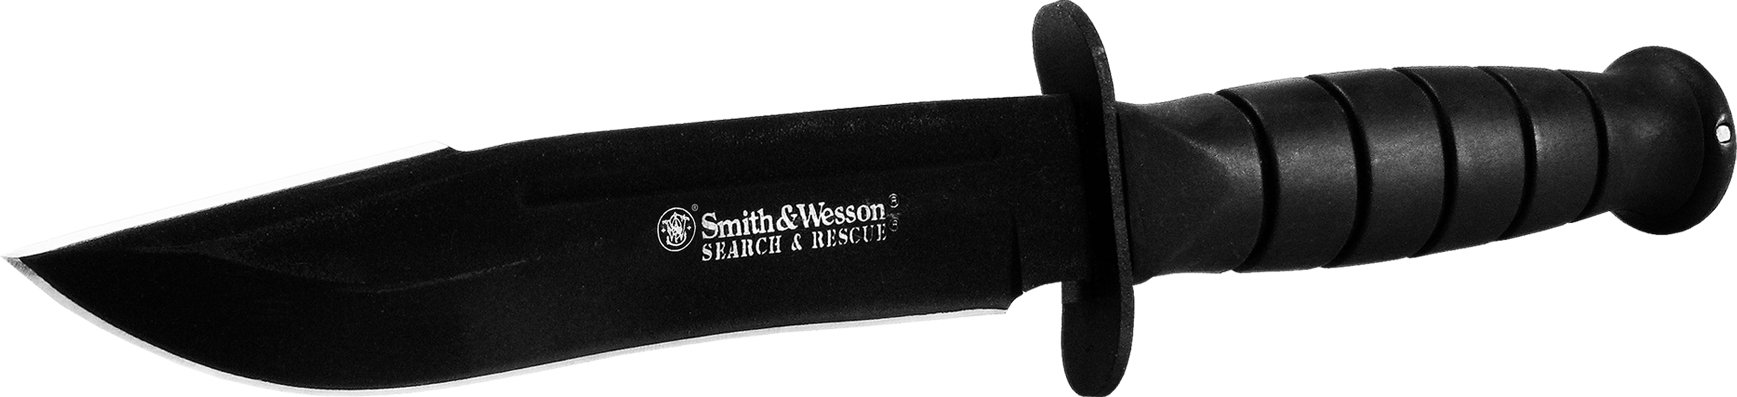 Smith & Wesson Search & Rescue CKSUR1 Clip Point Fixed Blade Knife Rubberized Aluminum Handle by Smith & Wesson (Image #2)